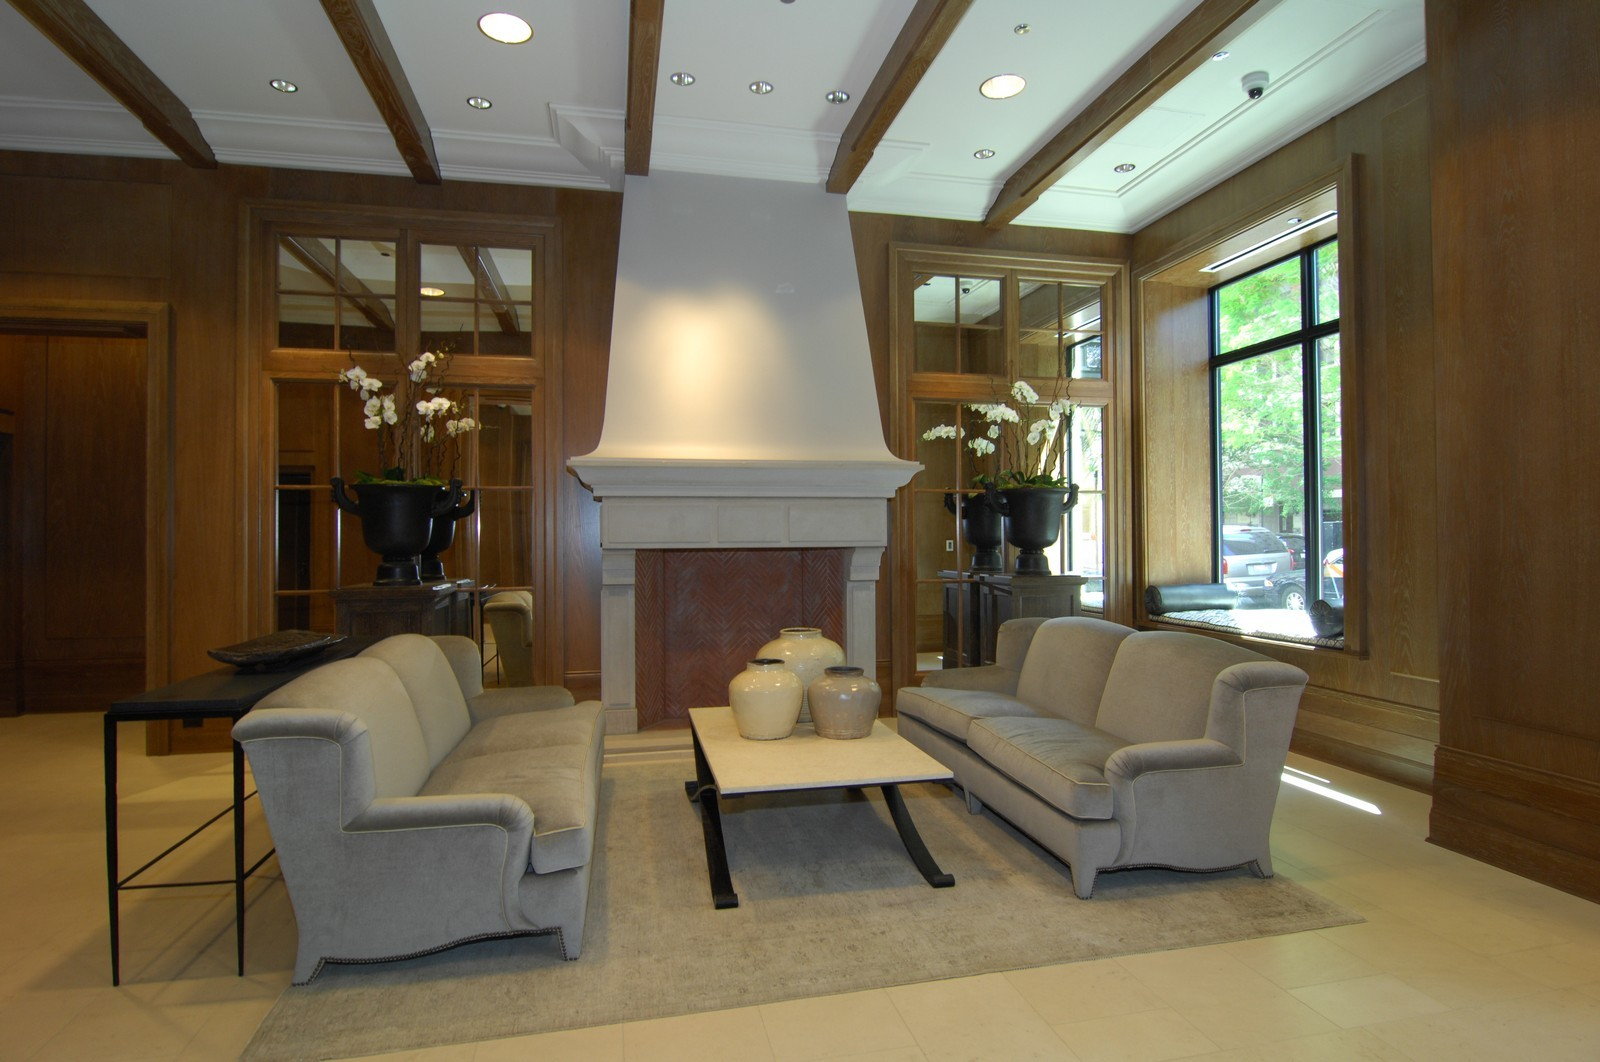 Real Estate Photography - 10 E Delaware Ave, Chicago, IL, 60610 - Lobby